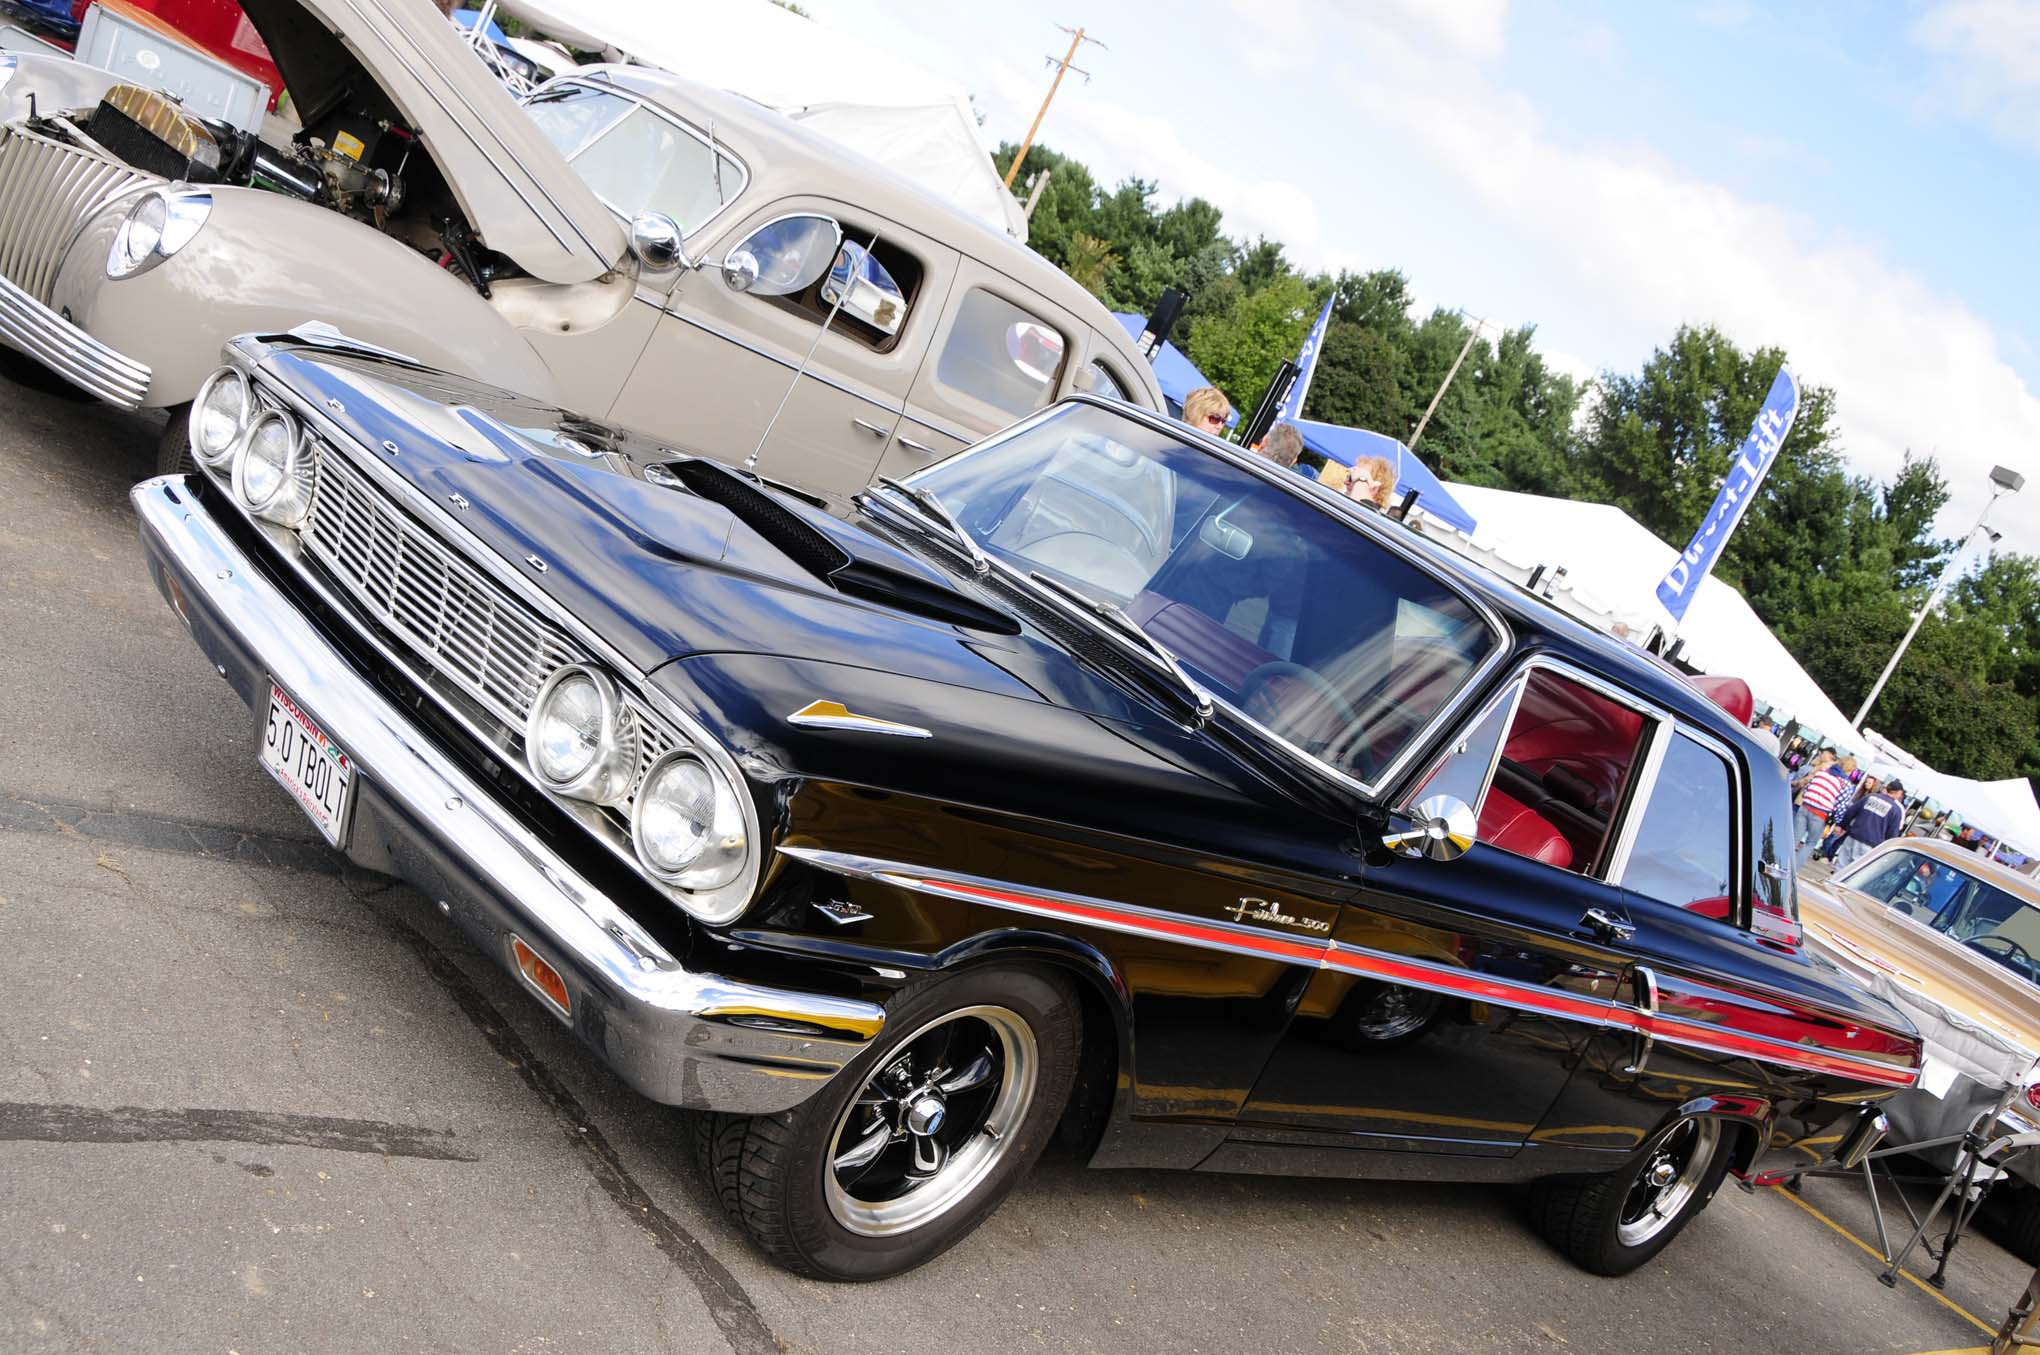 Looking like it was ready to take on contenders at the local dragstrip, L. Breier's 1964 jet-black Ford Fairlane 500 had an aggressive stance and plenty of attitude.